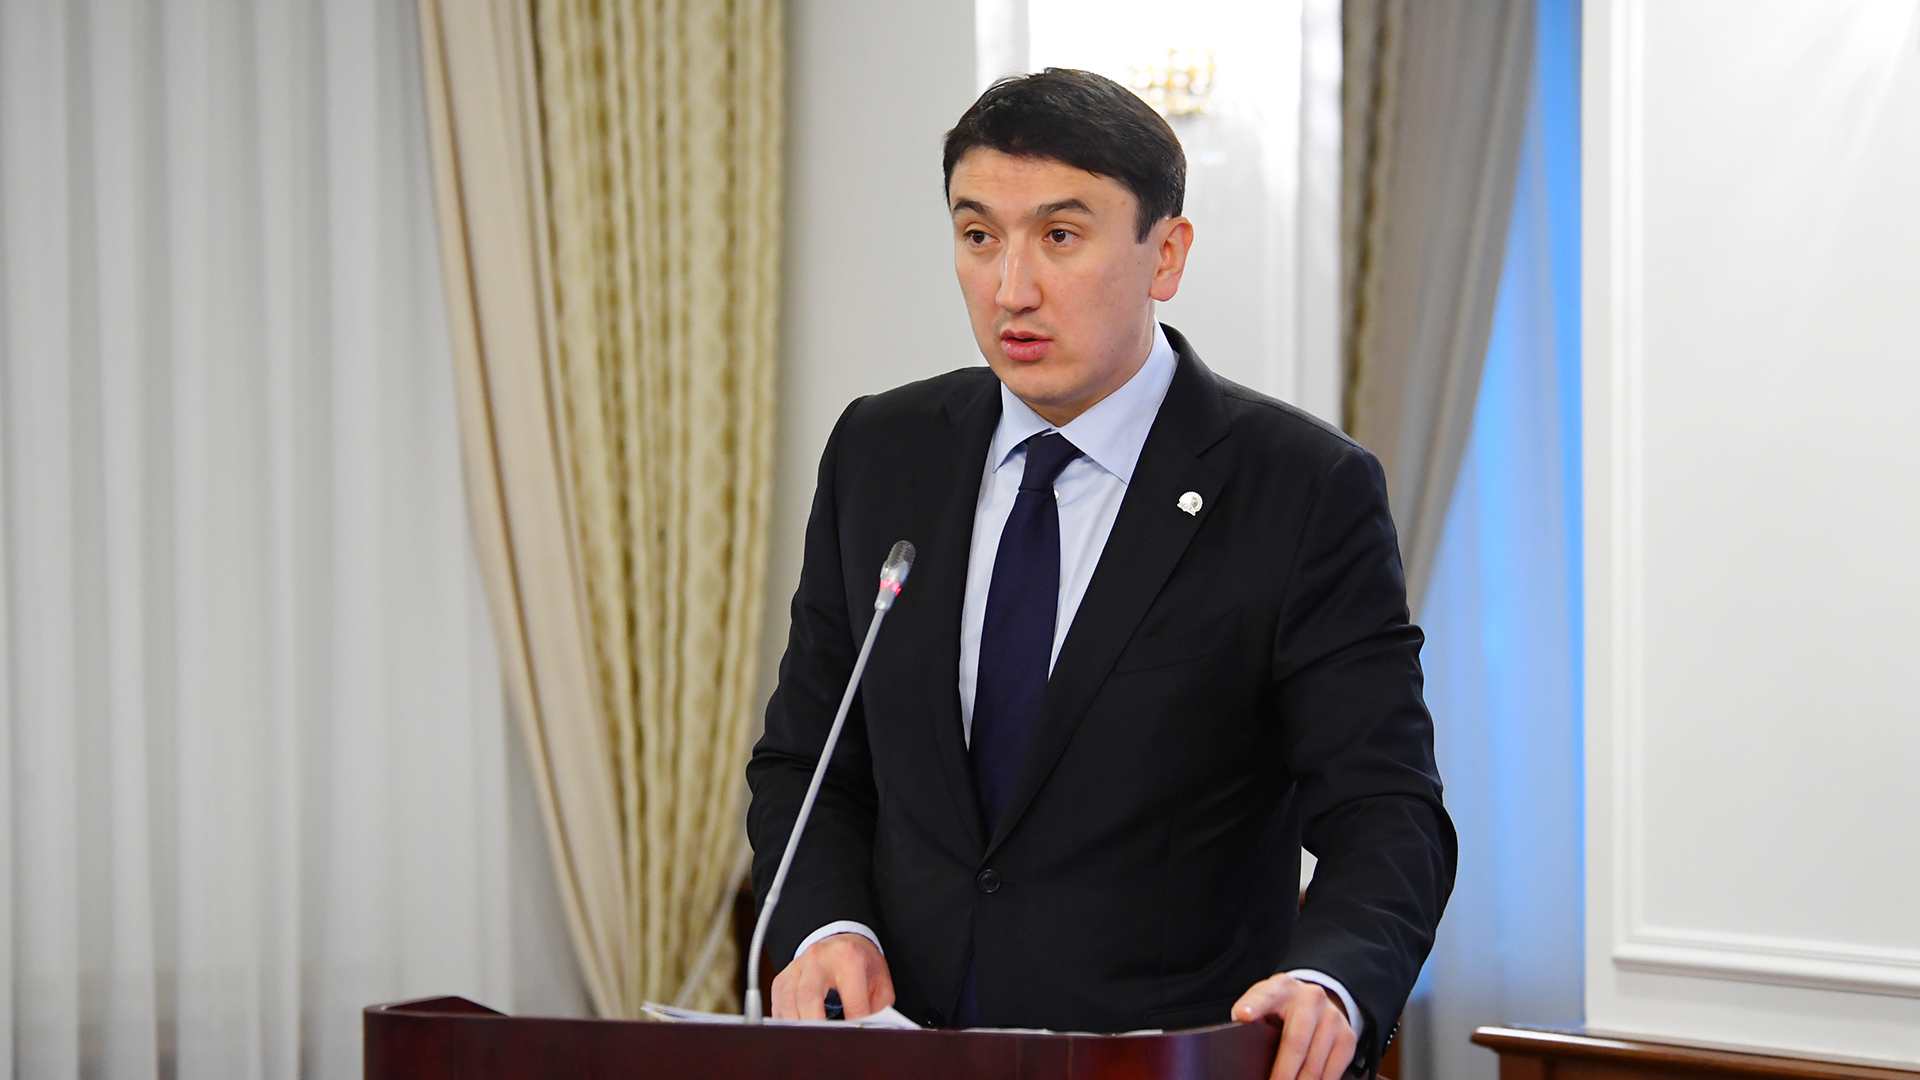 About 2.5 million tons of seeds harvested in Kazakhstan in 2021 — Ministry of Agriculture